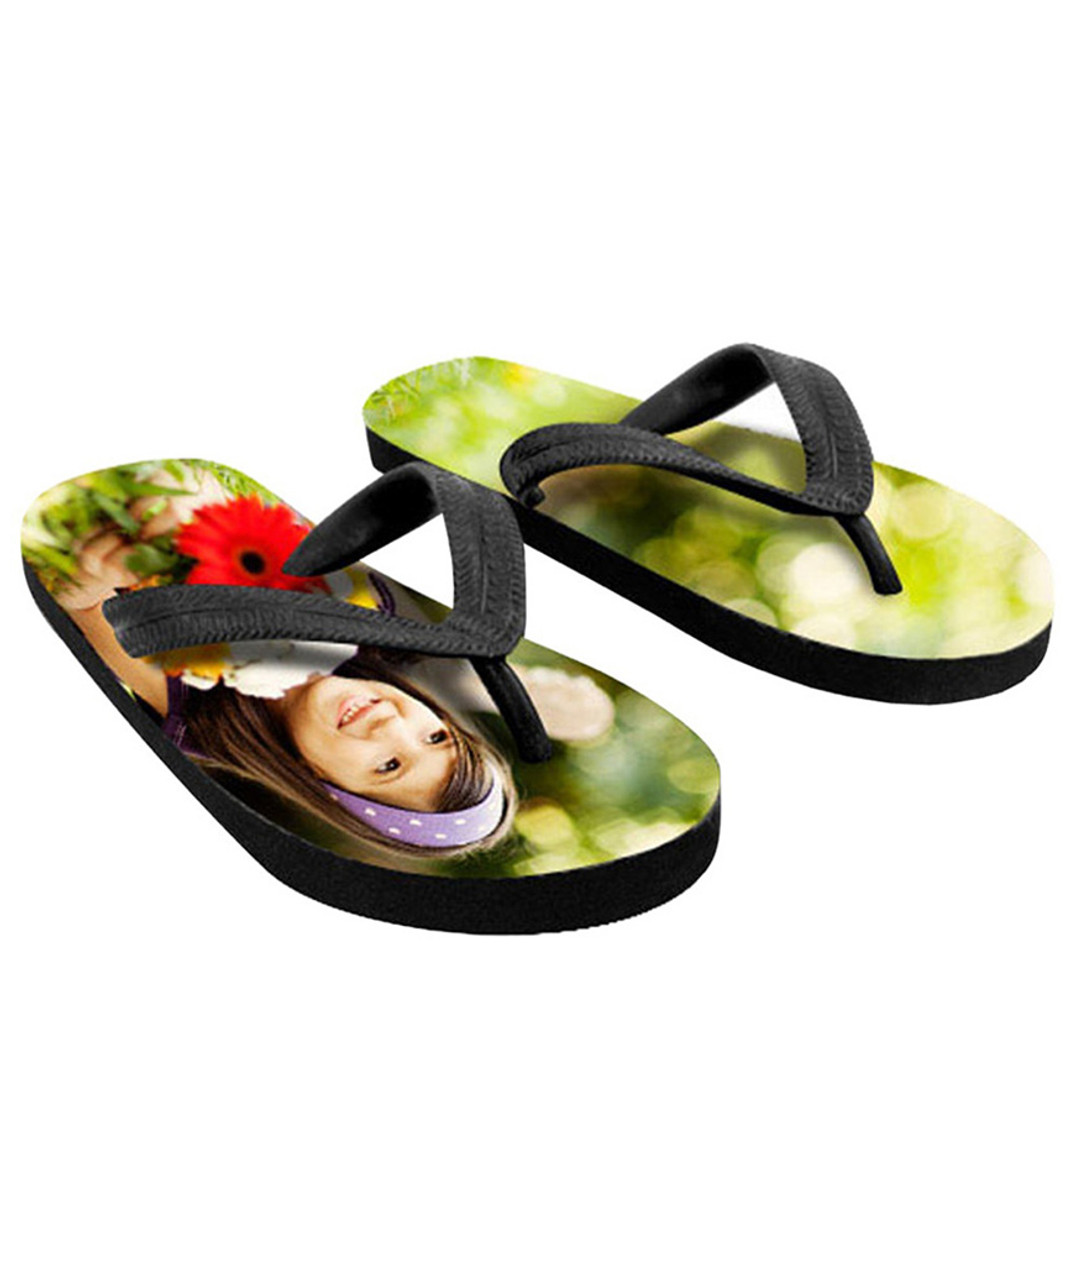 efac3f4295434 Flip Flops Custom Personalized w/Your Design,Picture,Logo & Text